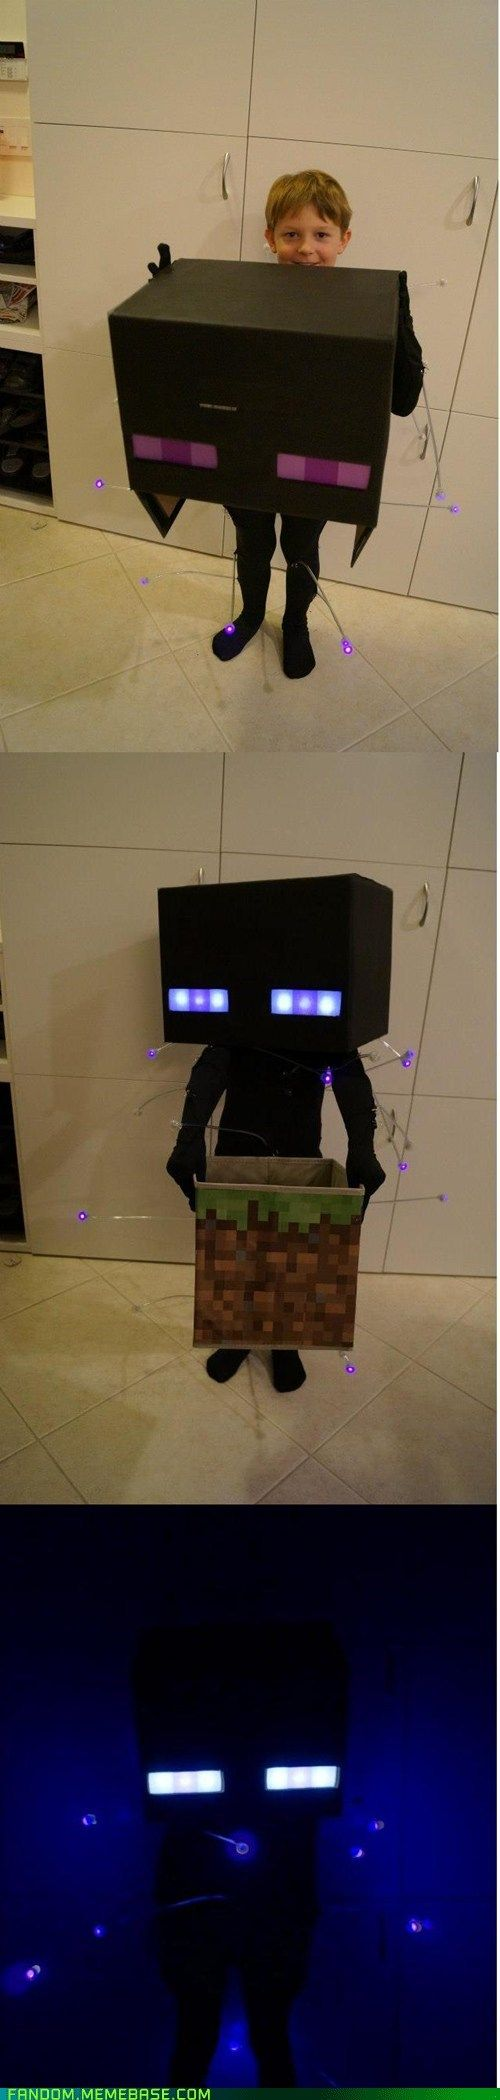 Enderman from Minecraft O_O holy cow that's awesome!!!